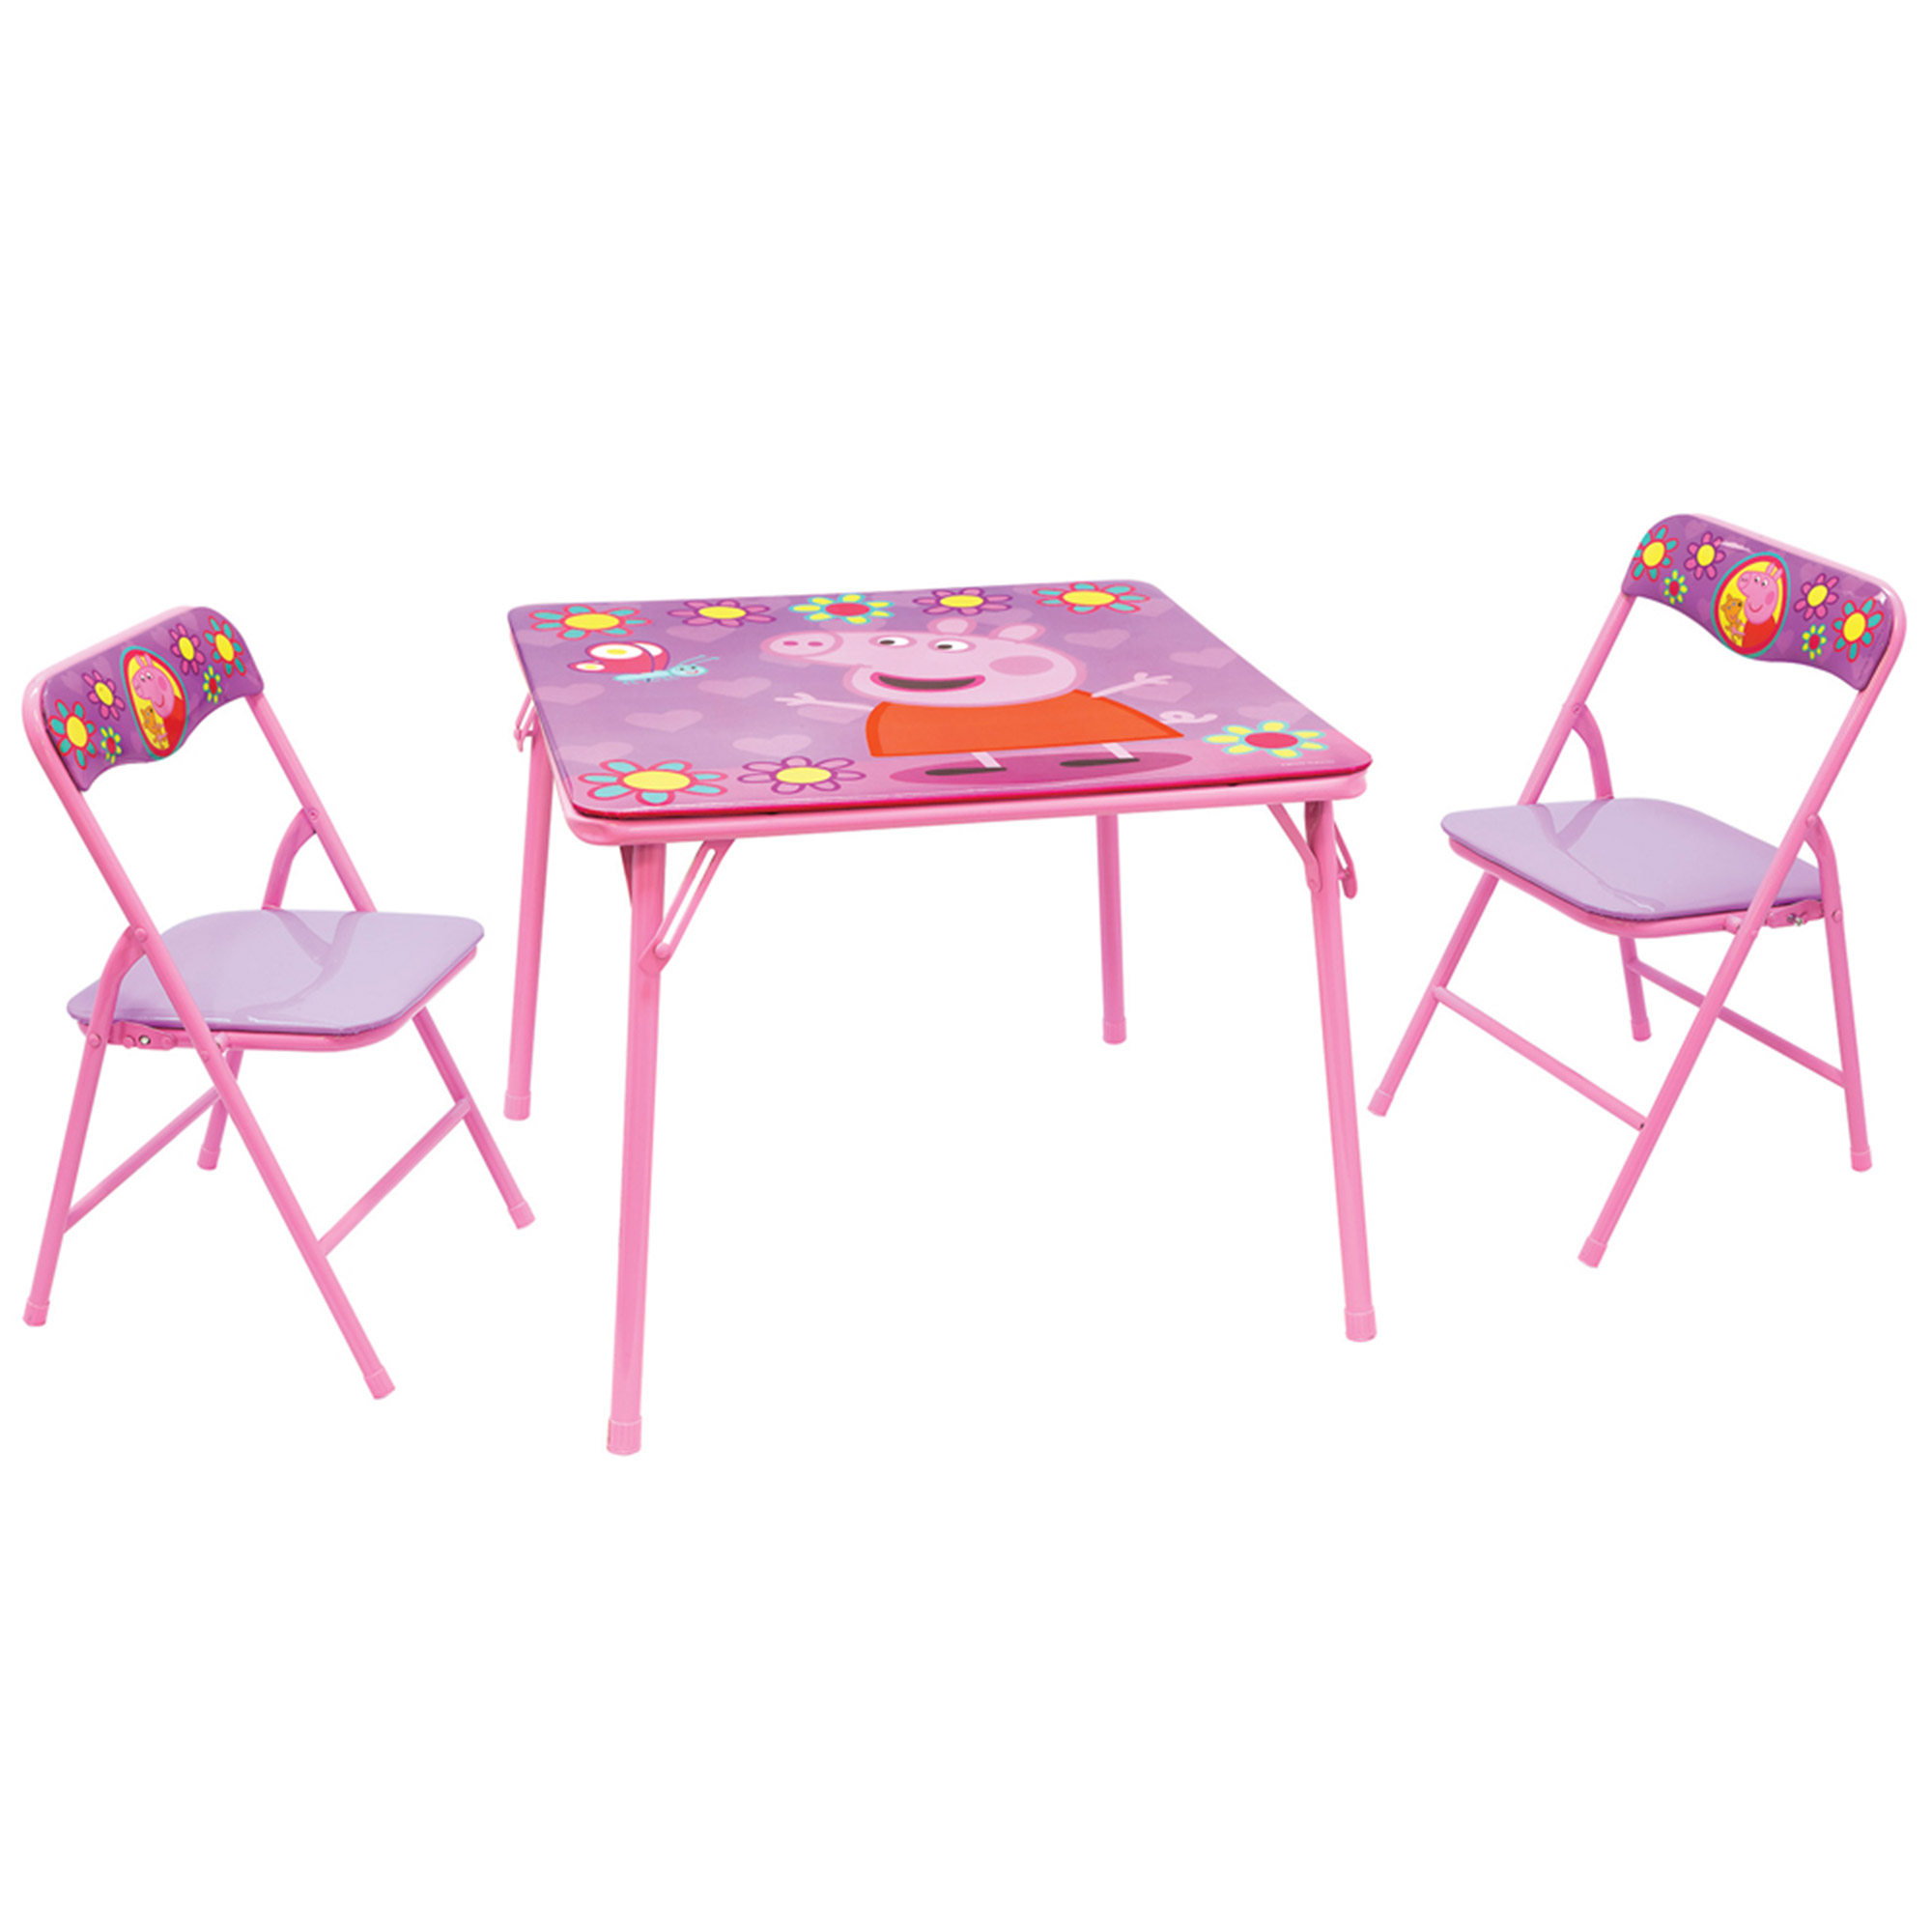 Peppa Pig Activity Table Set